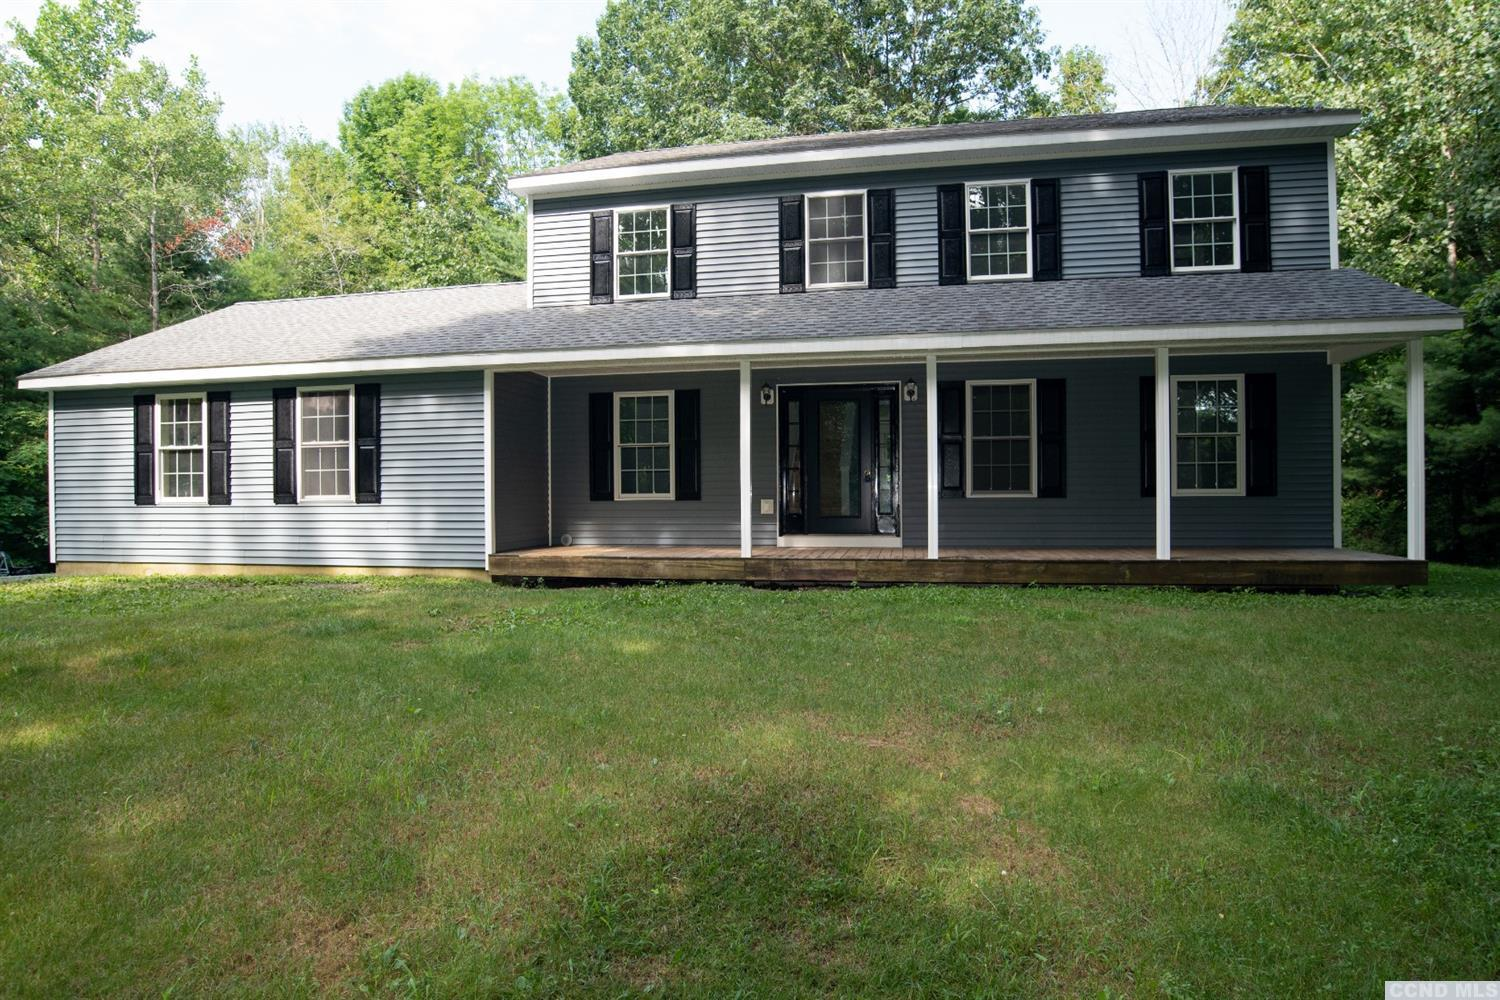 Secluded - yet close! Open the barn door from the mudroom/laundry and step into your gorgeous new 27 x 20 kitchen! If you love to cook, don't miss taking a look at this home.  Kitchen boasts granite counters and a 8'6 x 3' center isle with custom Maple top, dishwasher and double sink, all new stainless appliances...breakfast nook area too.  Kitchen opens to living room and formal dining room.  Upstairs is a large master bedroom with walk-in closet and full bath; 3 bedrooms and another full bath finish the area.  Wood laminate floors throughout. 2 car attached garage - 2 acres - new central air - 8 x 14 deck - Schodack Schools and just minutes to I-90...20 minutes to Hudson.  Fireplace could be added in living room.